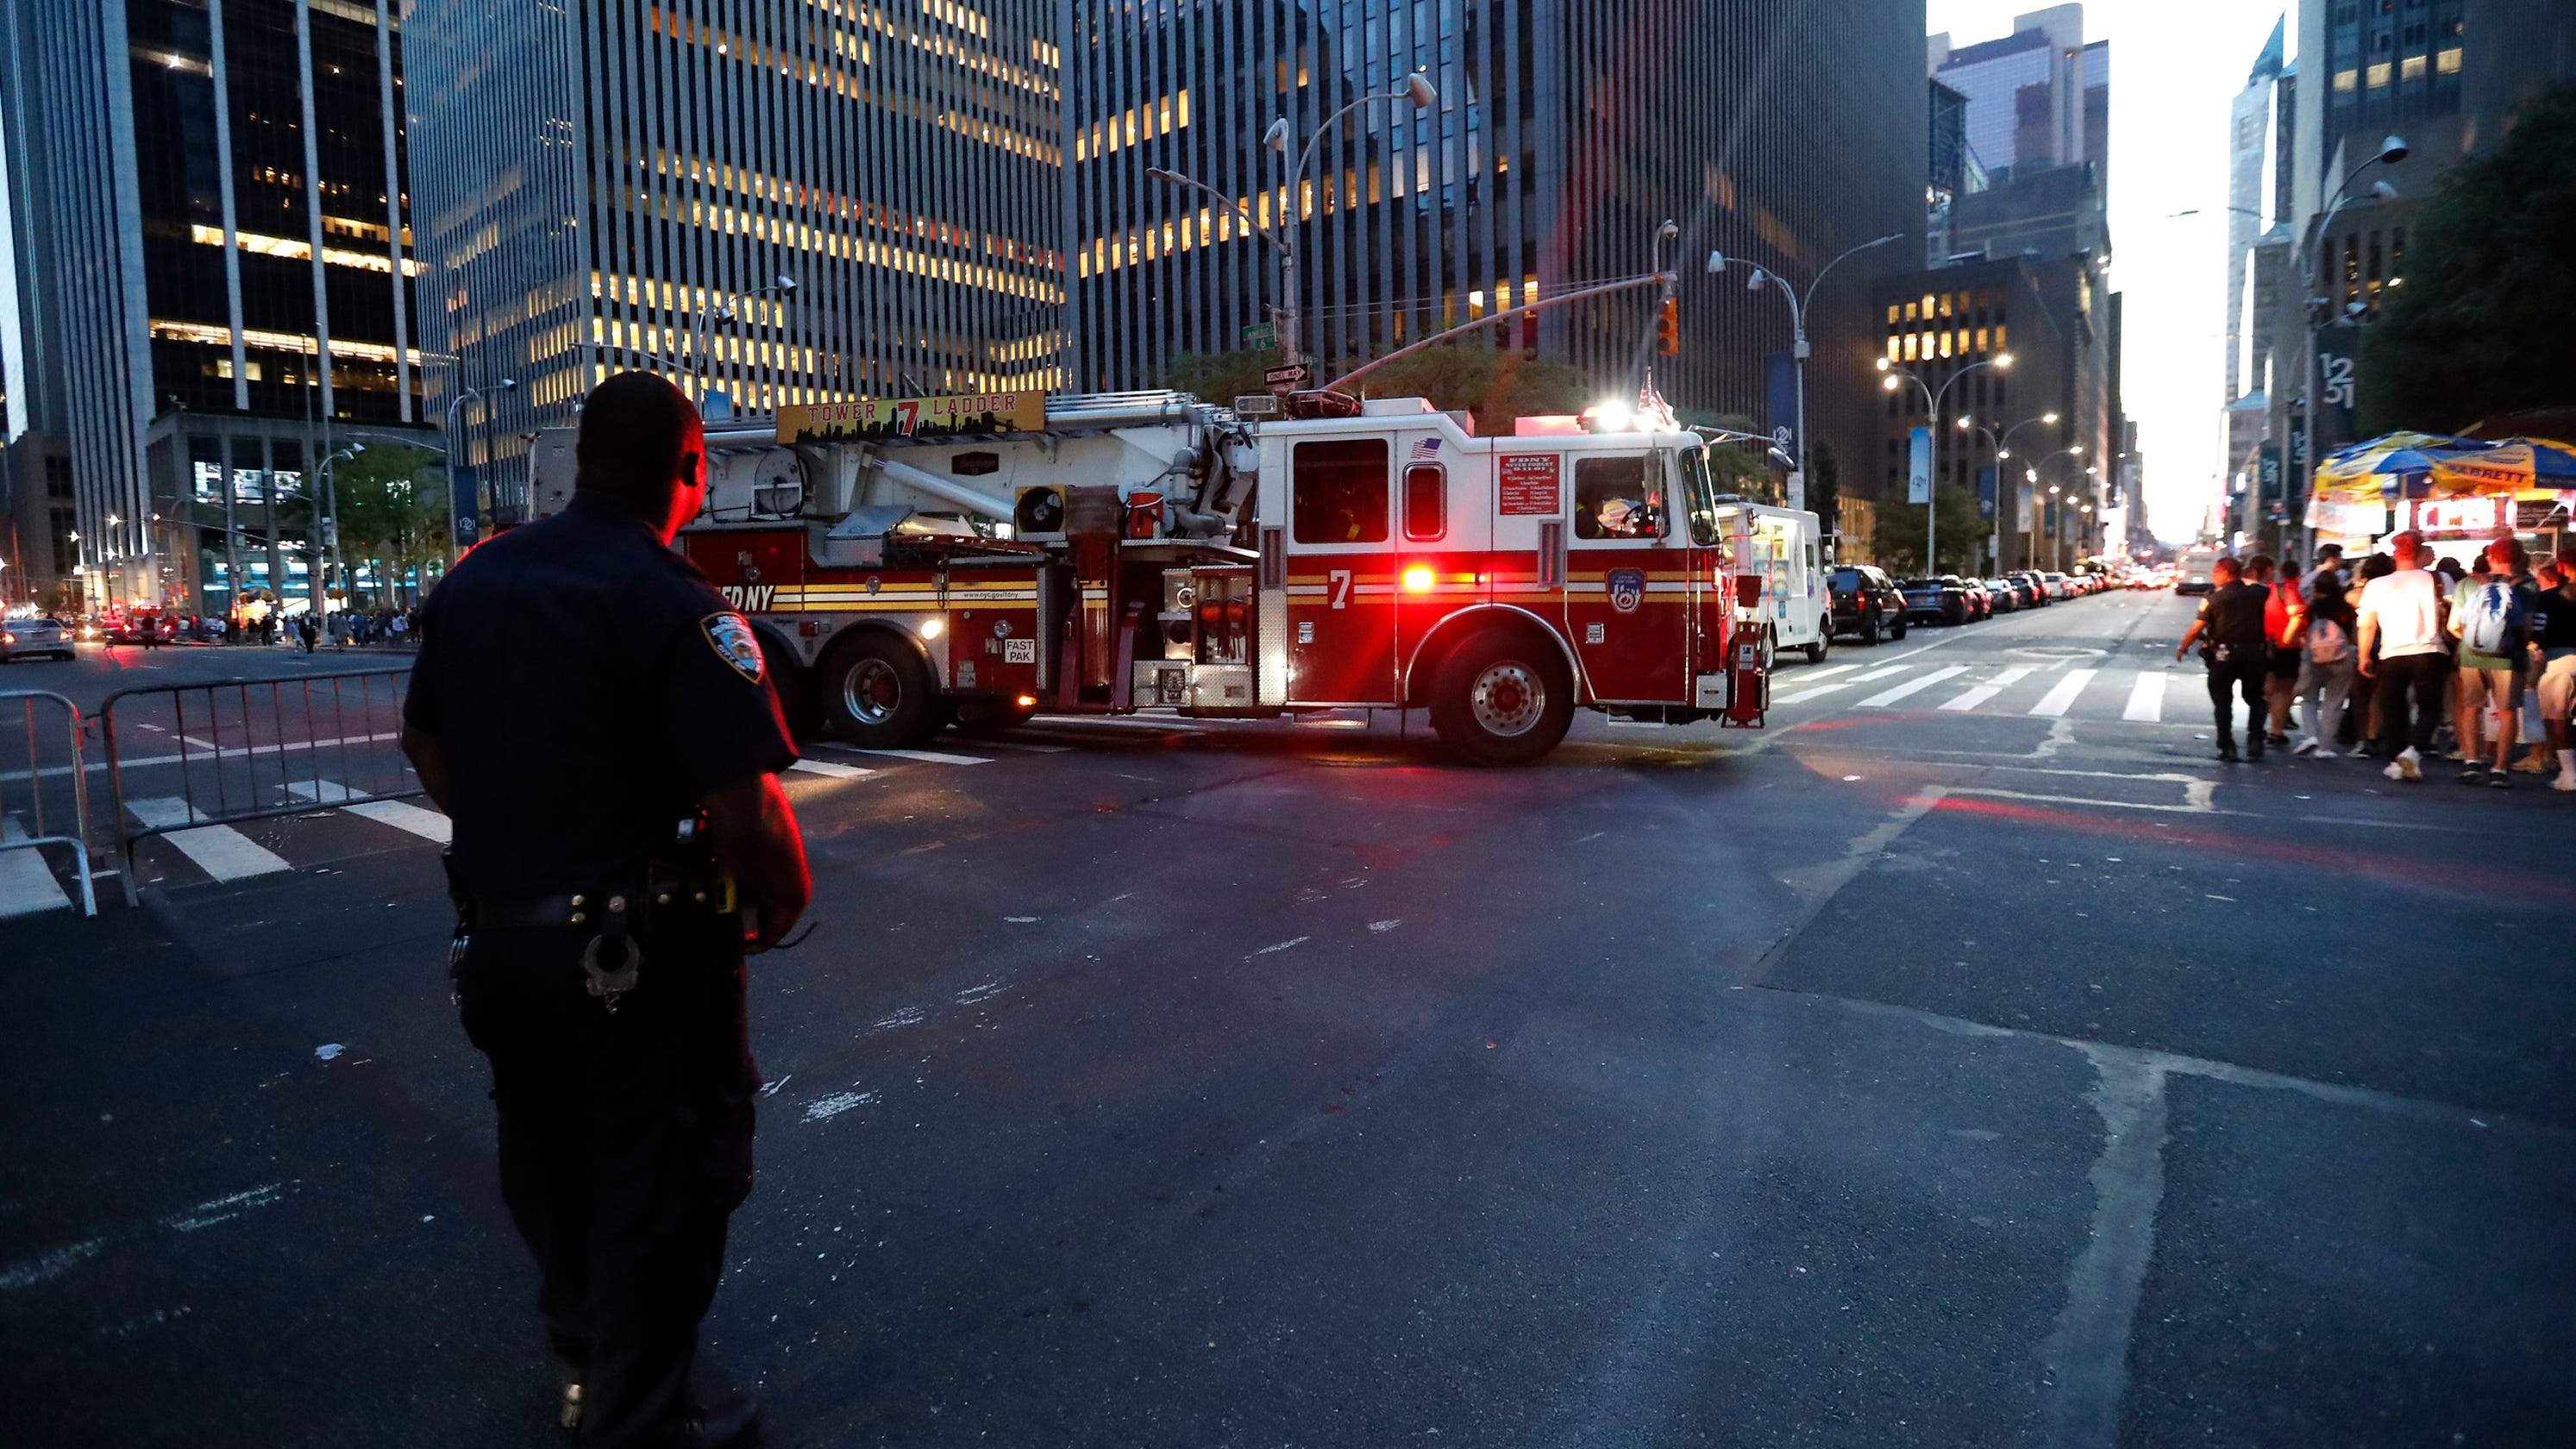 Manhattan power outage: Widespread power outages in New York